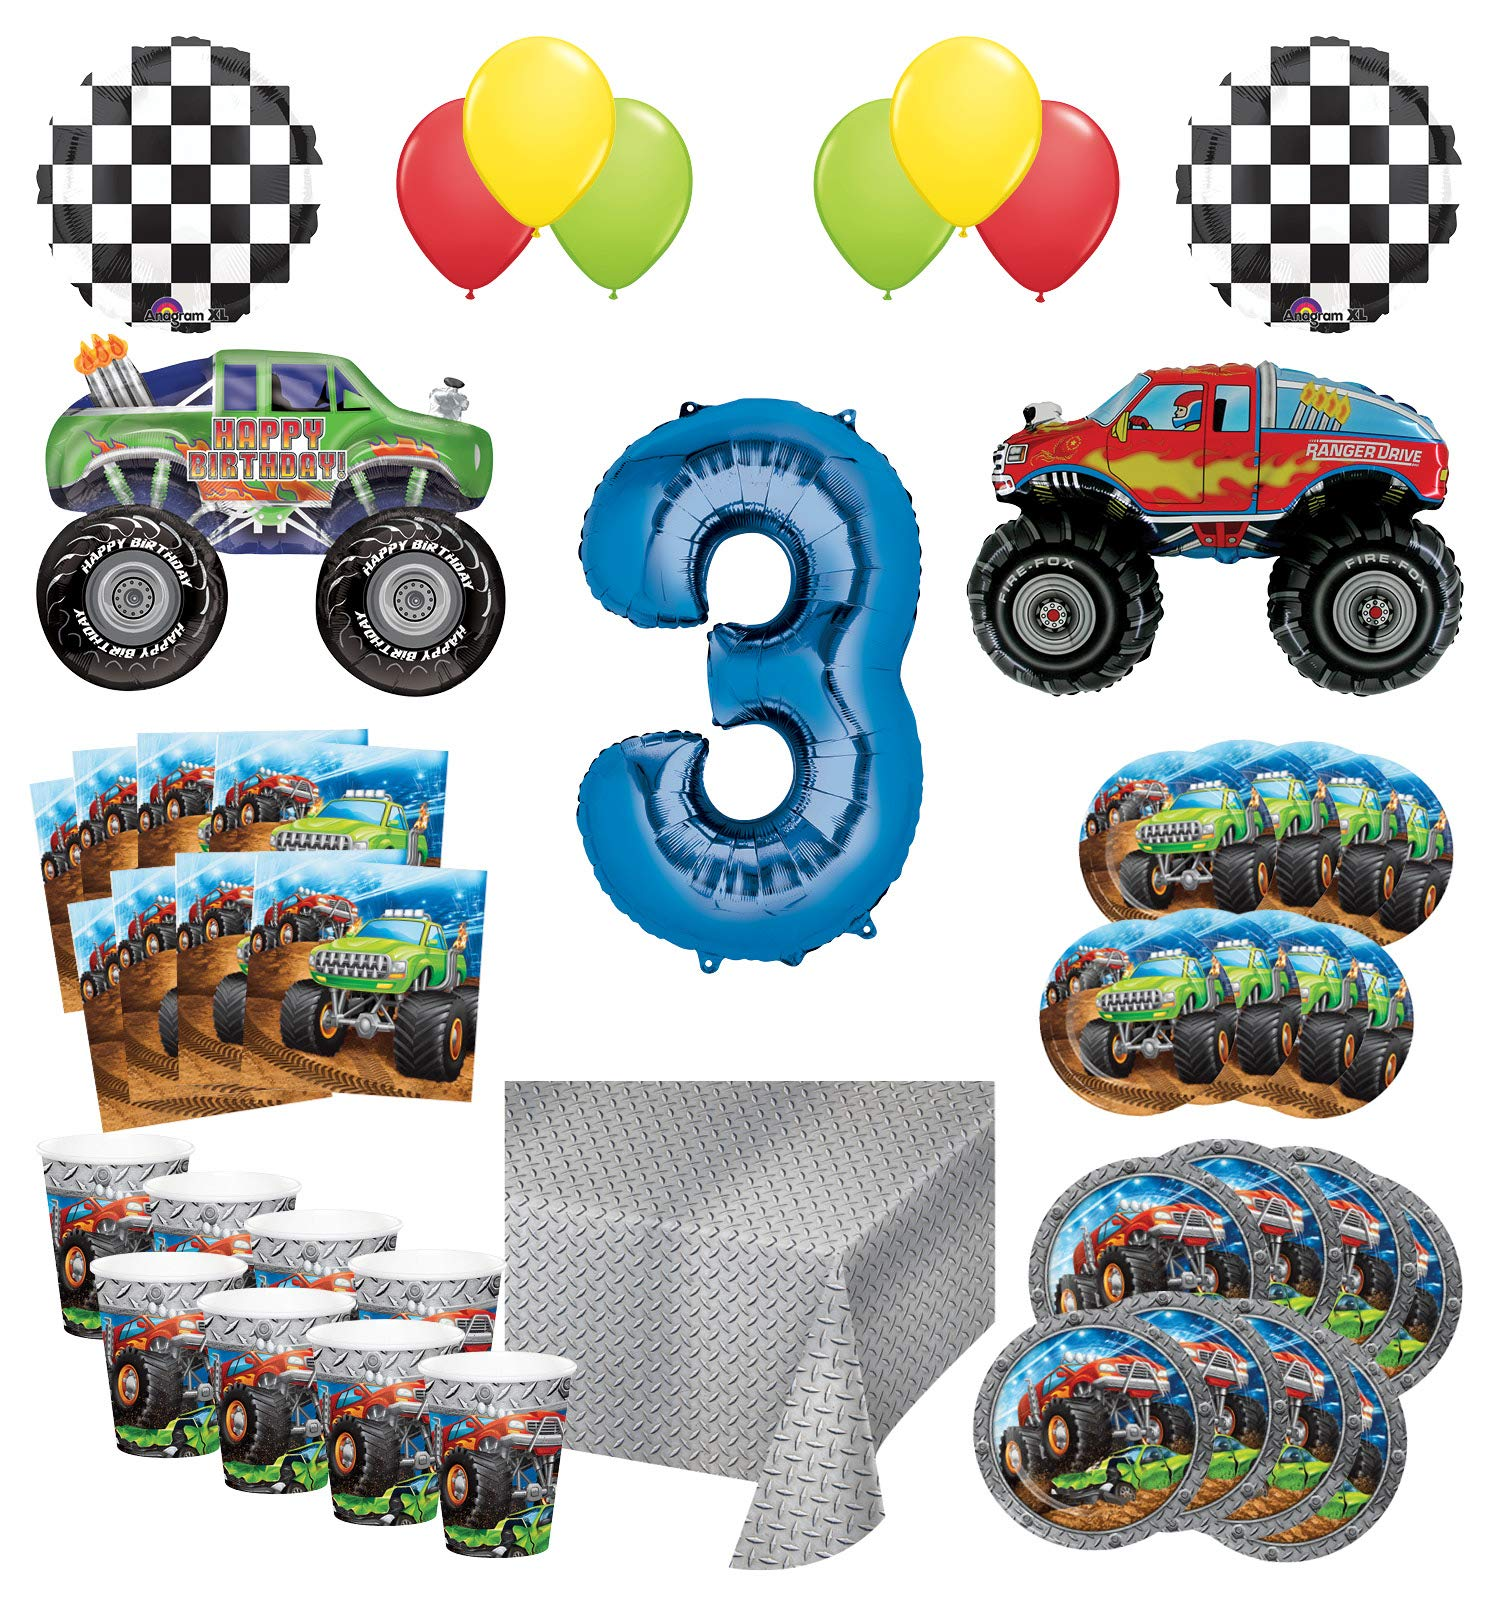 Mayflower Products Monster Truck Rally 3rd Birthday Party Supplies 8 Guest Decoration Kit with Green and Red Monster Truck Balloon Bouquet